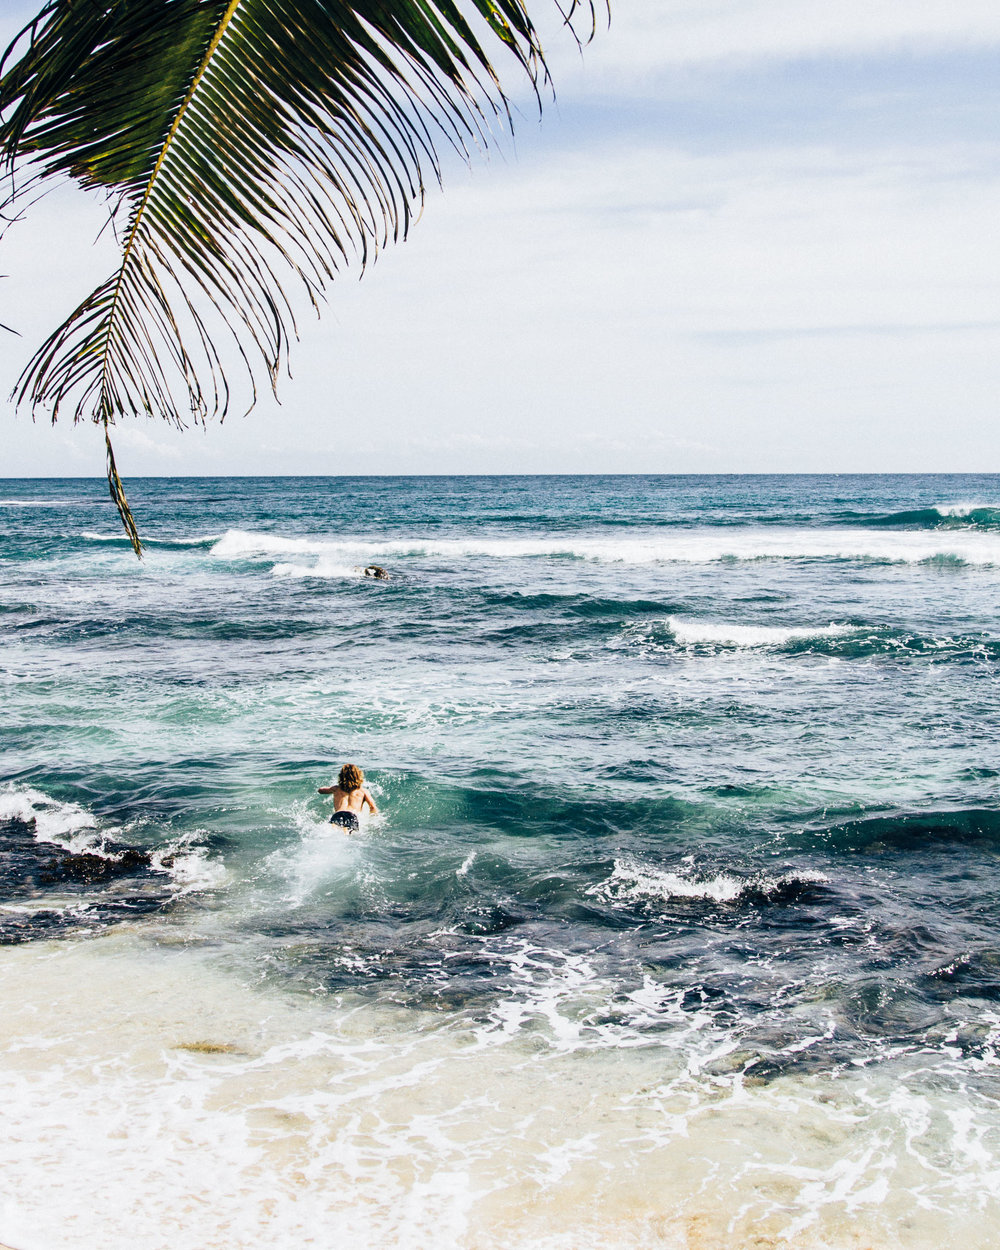 Time to paddle in crystalline water in Sri Lanka. Photo by Morgan Woods & Christian Quinlan